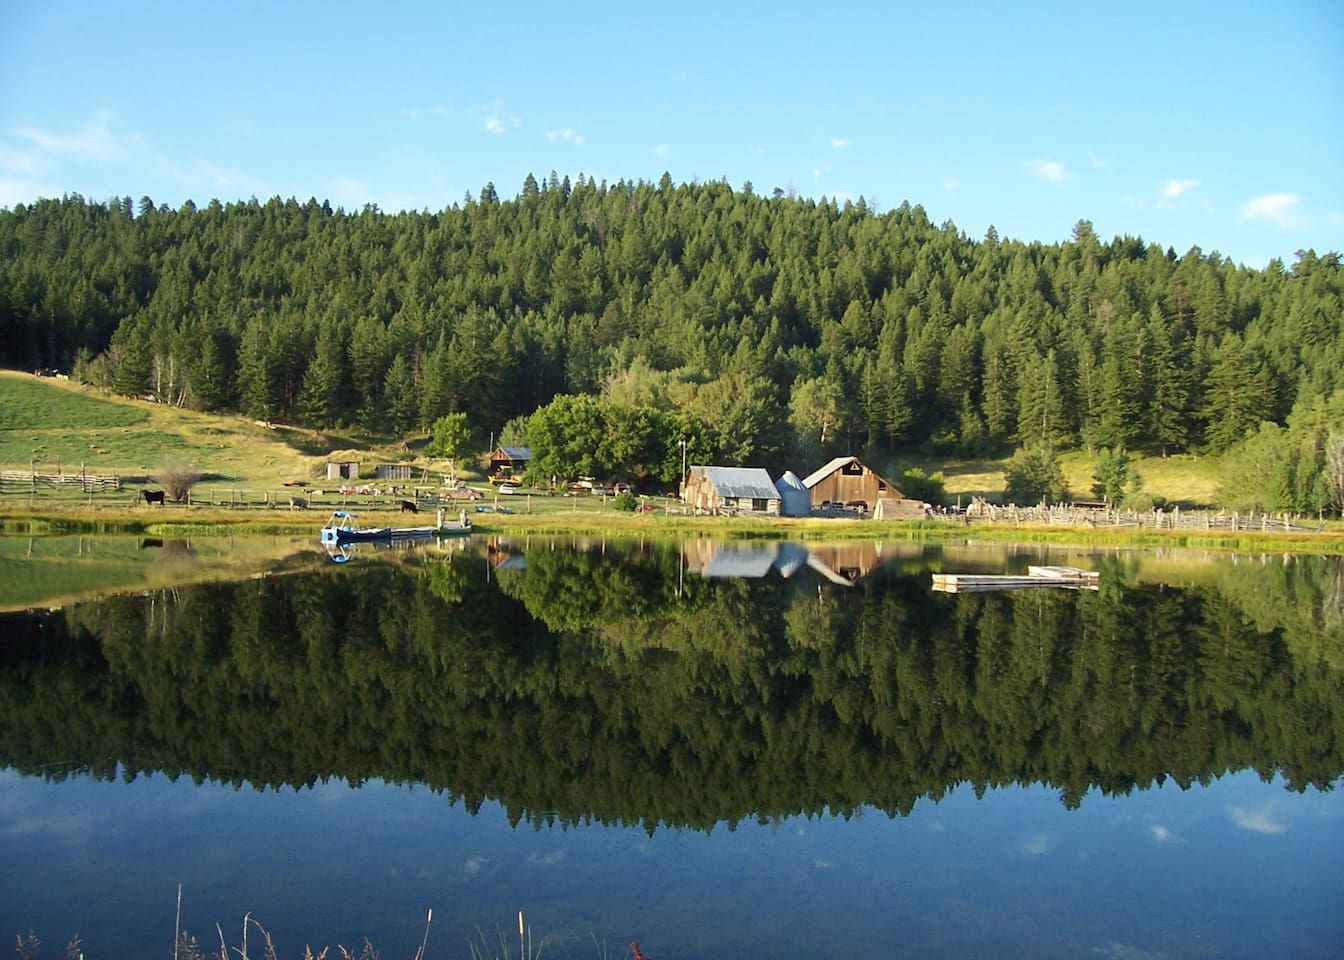 Granite Lake if the perfect mirror for the ranch headquarters and the beautiful forest.